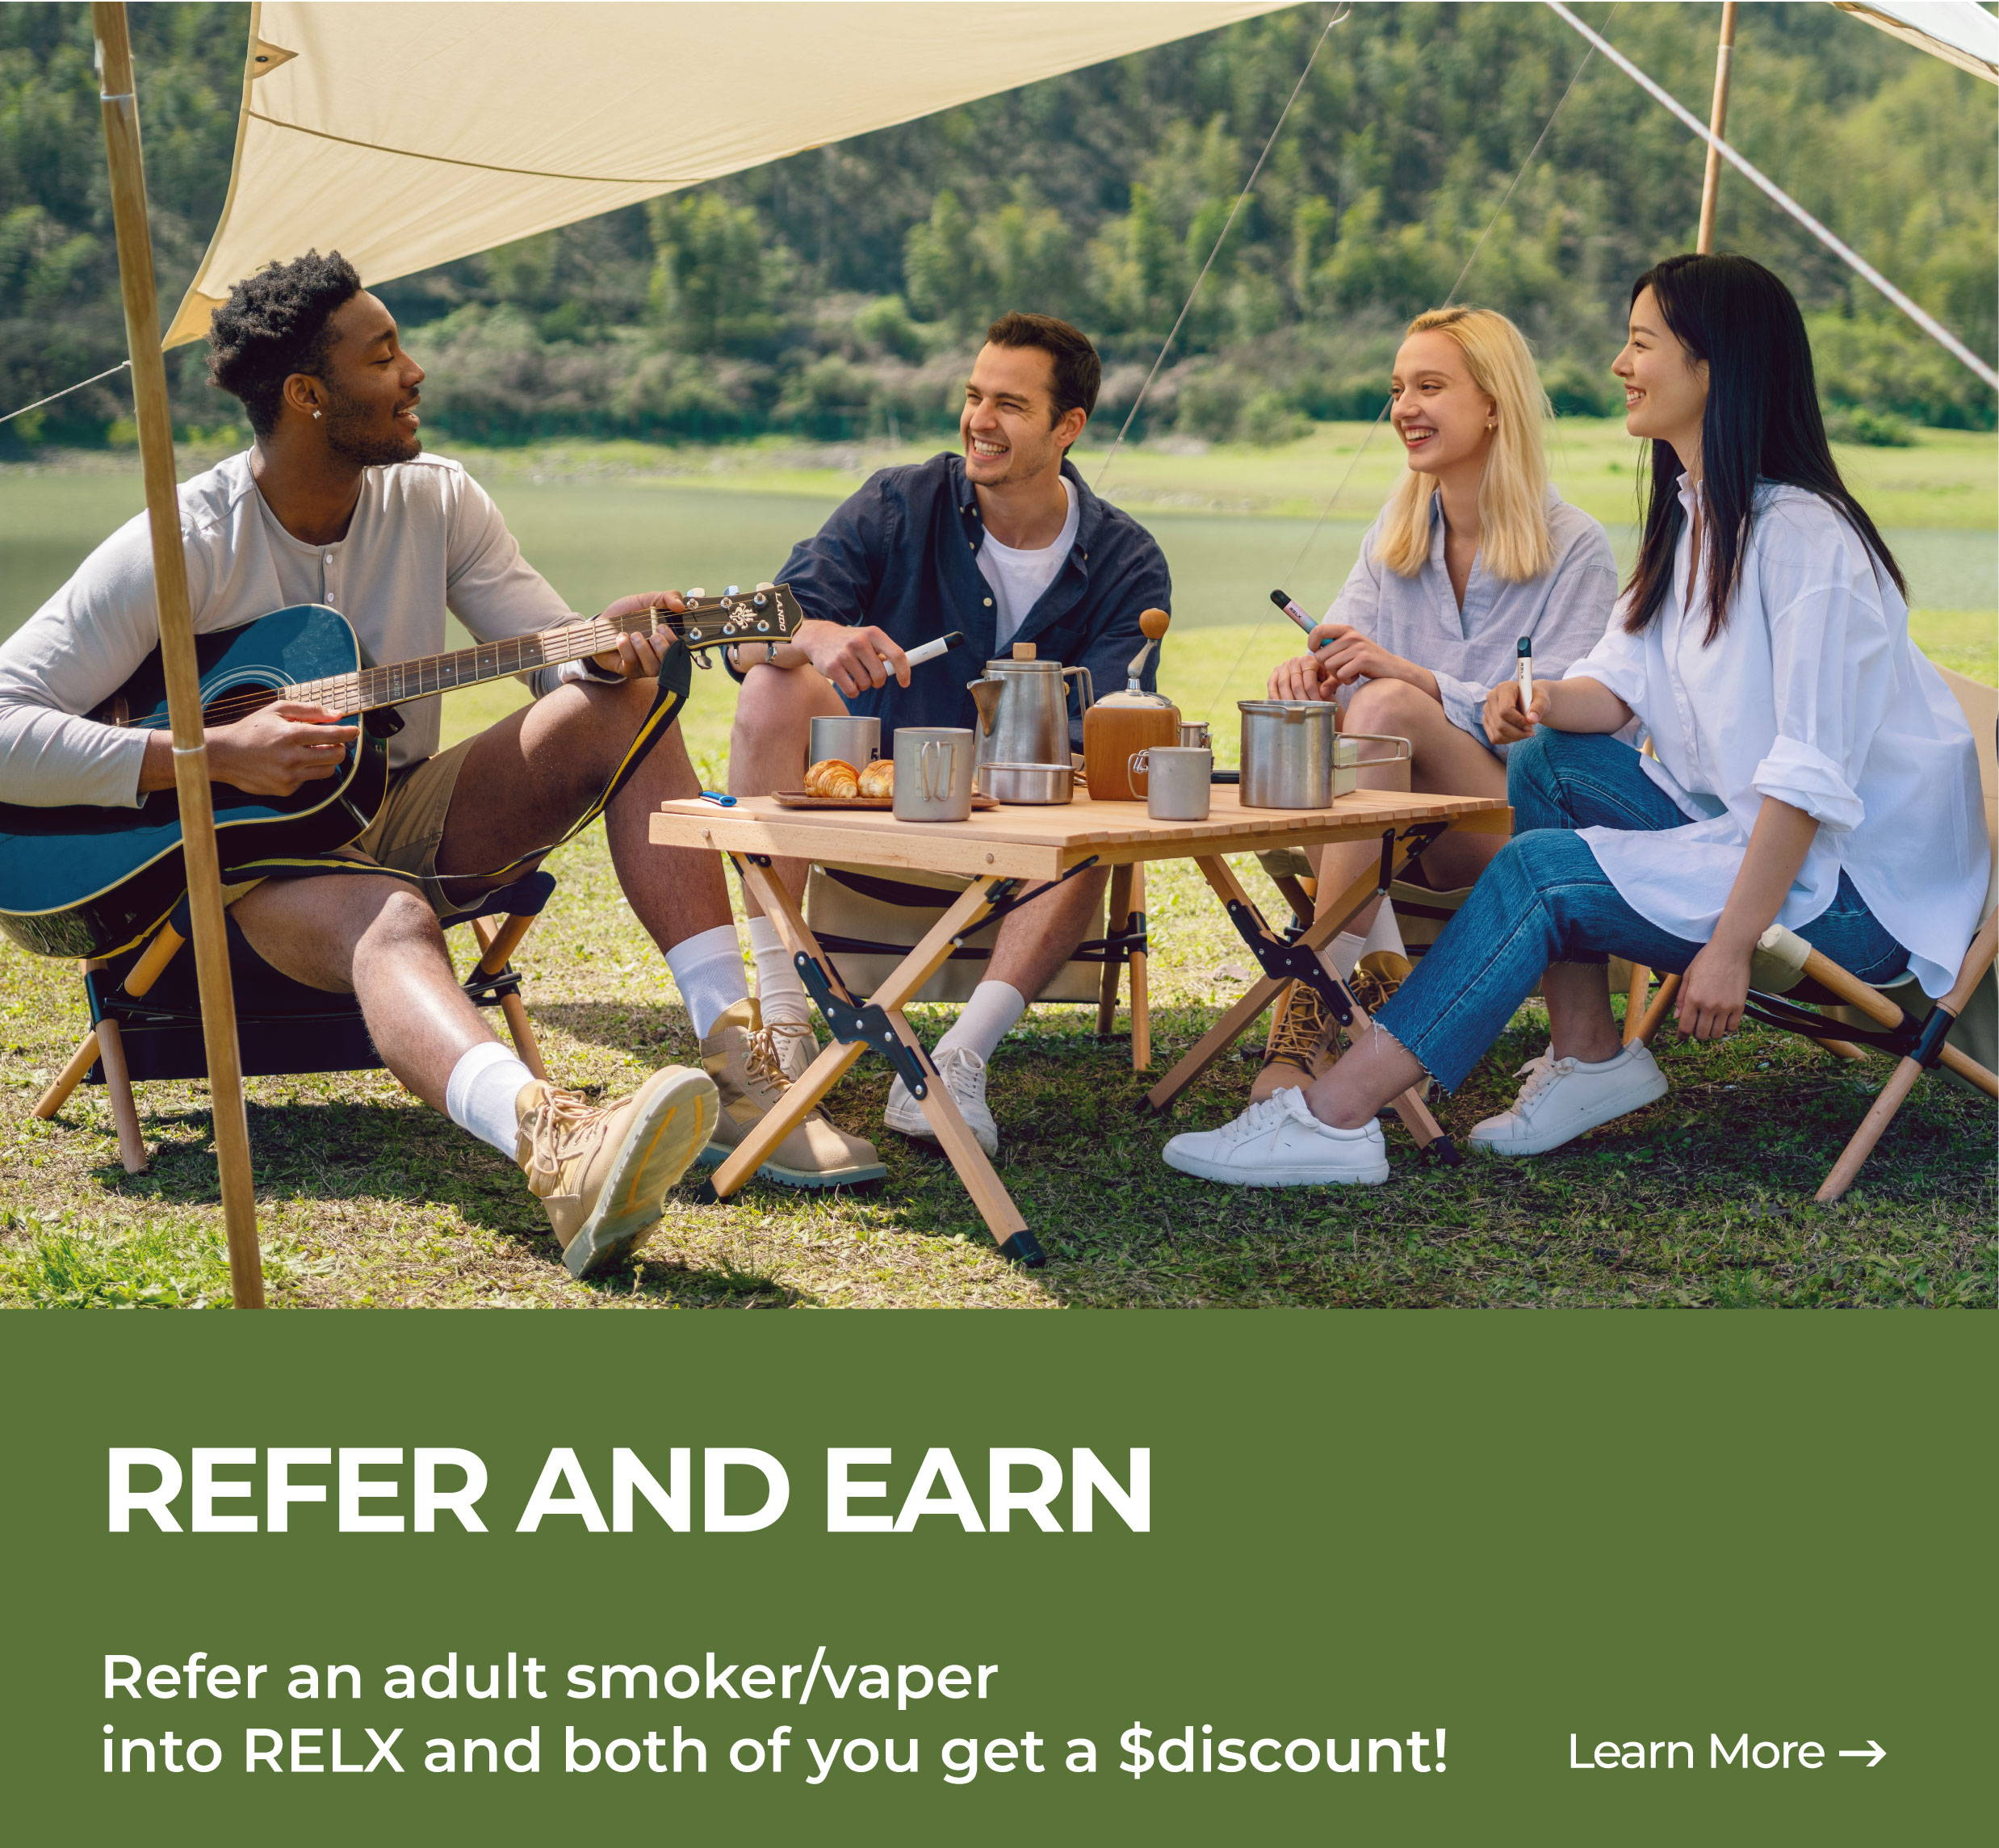 Refer and adult smoker/vaper into RELX and both of you get rewarded.